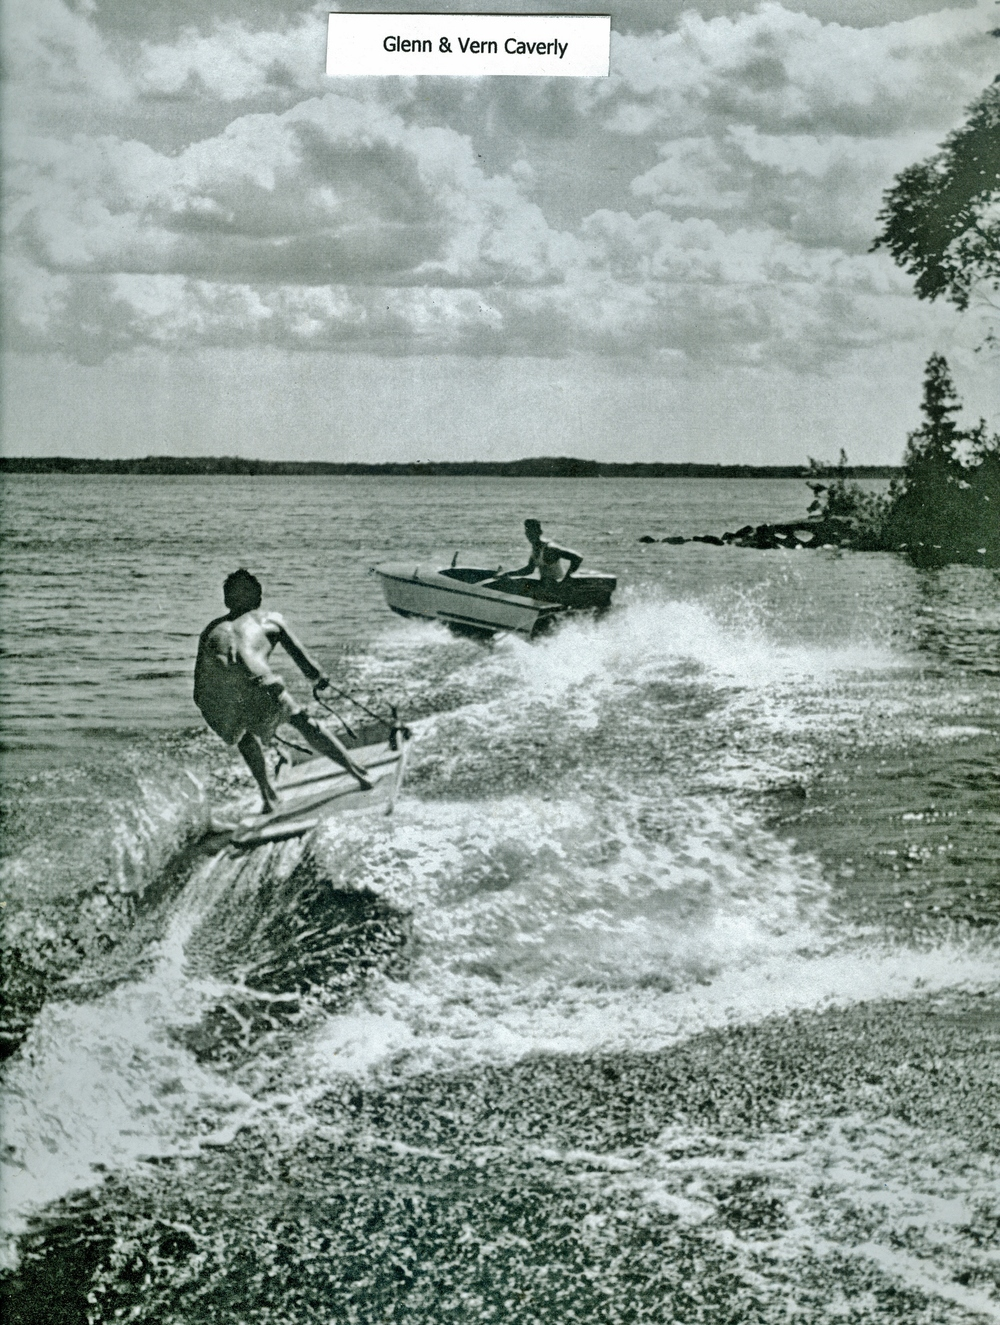 Vern Caverly & Glenn Caverly,  Crowe Lake,  Marmora.jpg